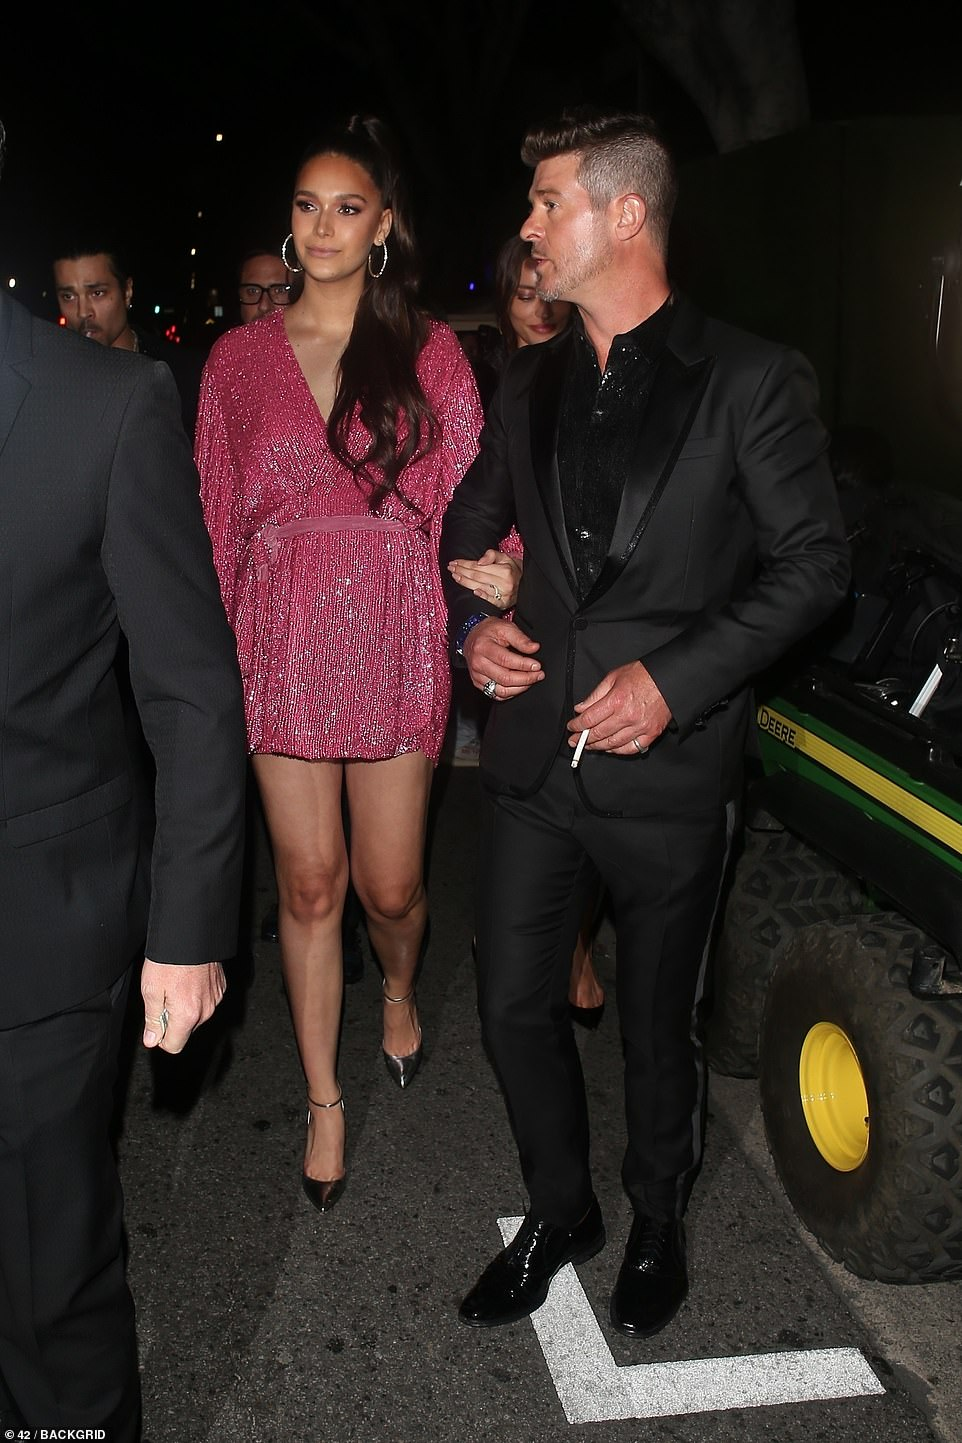 Date night: Another attendee of the party 24-year-old April Love Geary, who arrived with 42-year-old fiance Robin Thicke